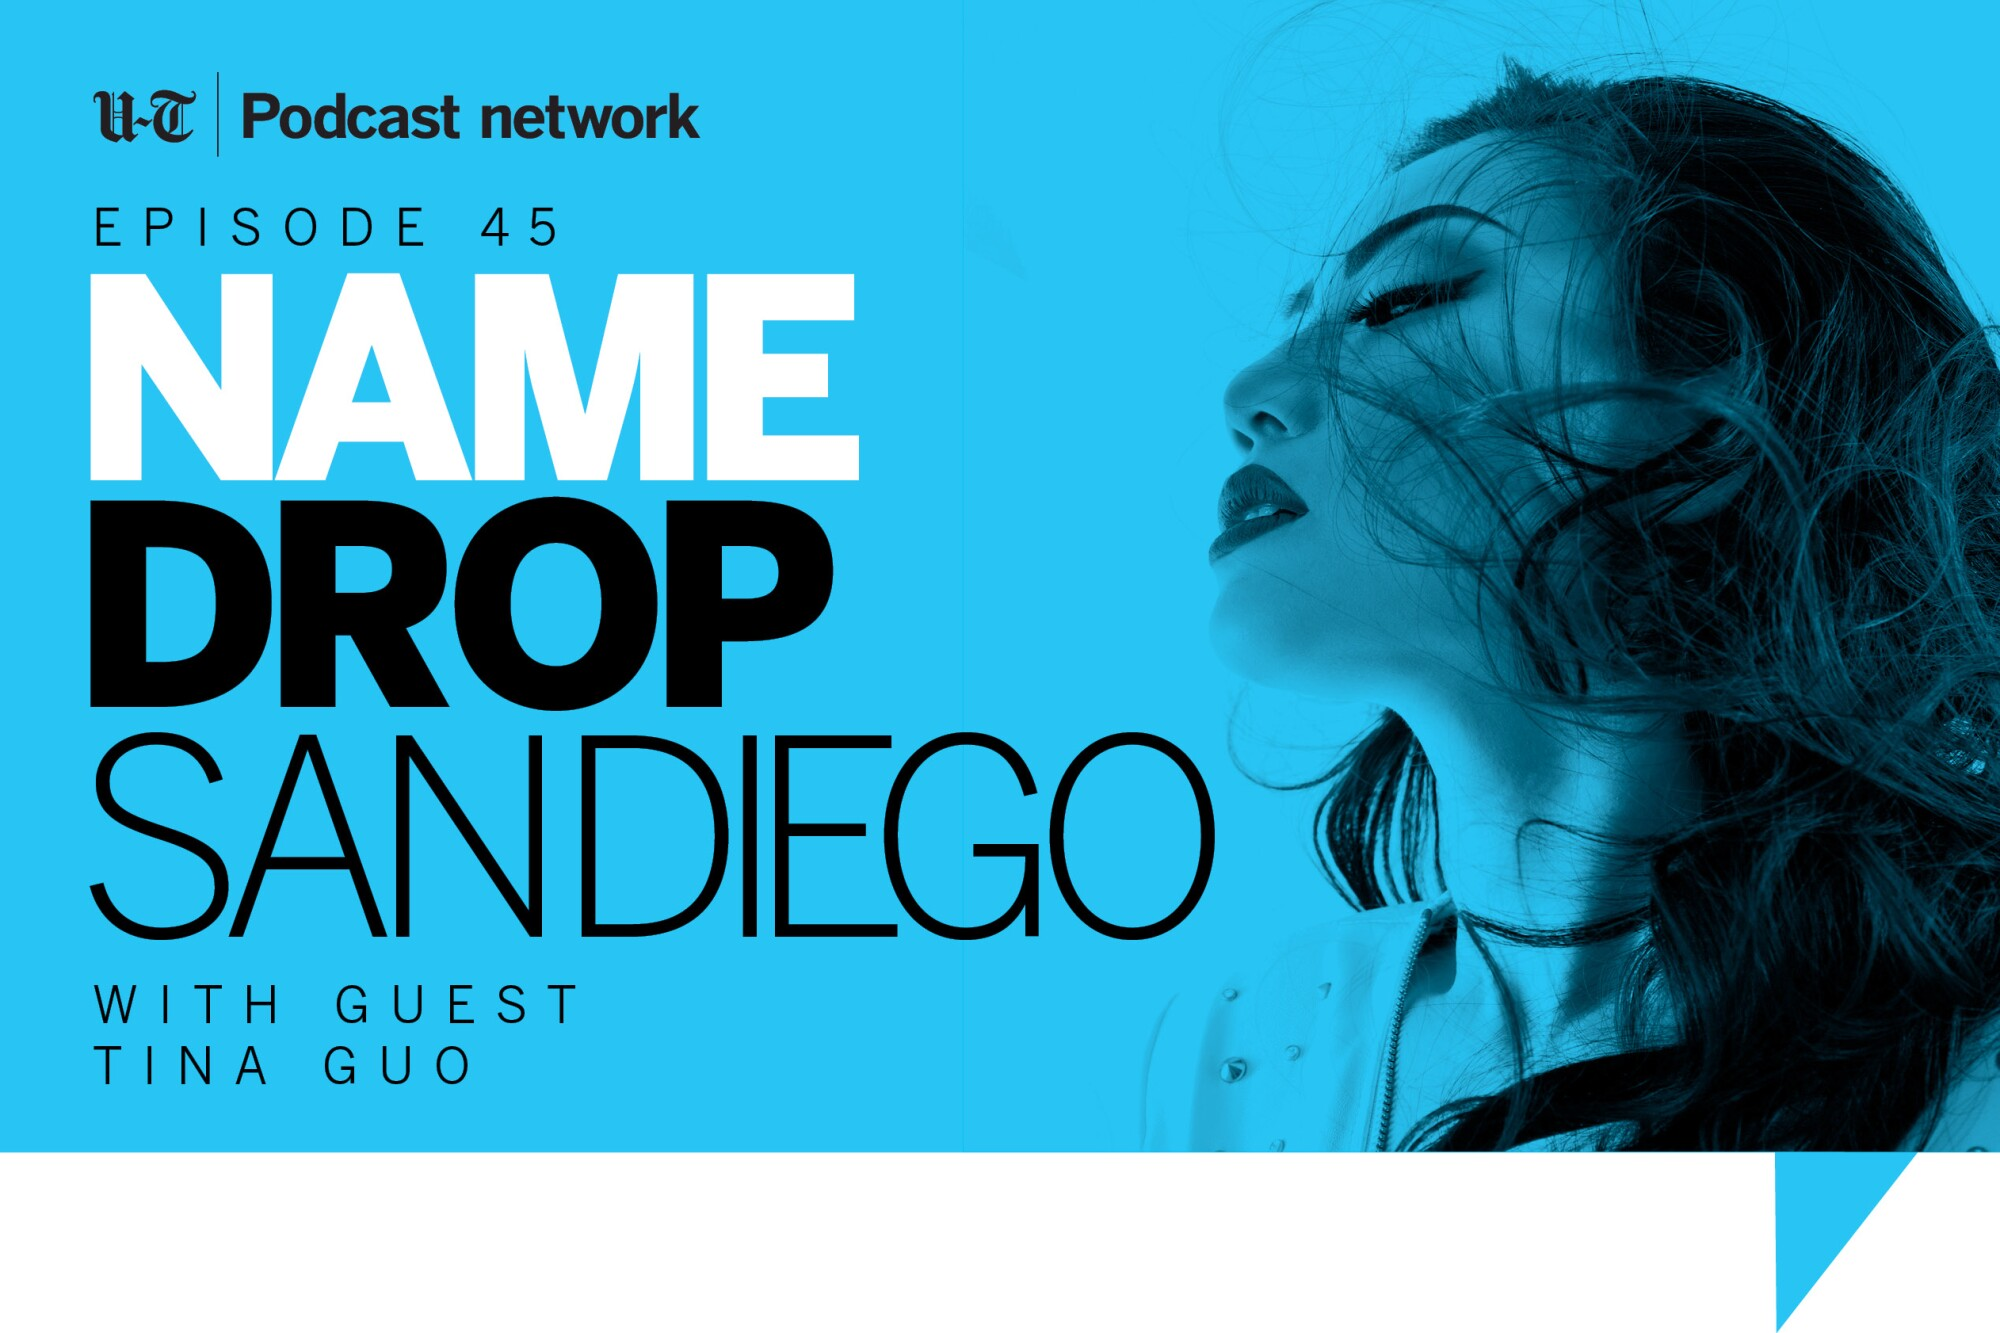 Tina Guo on the Name Drop San Diego podcast